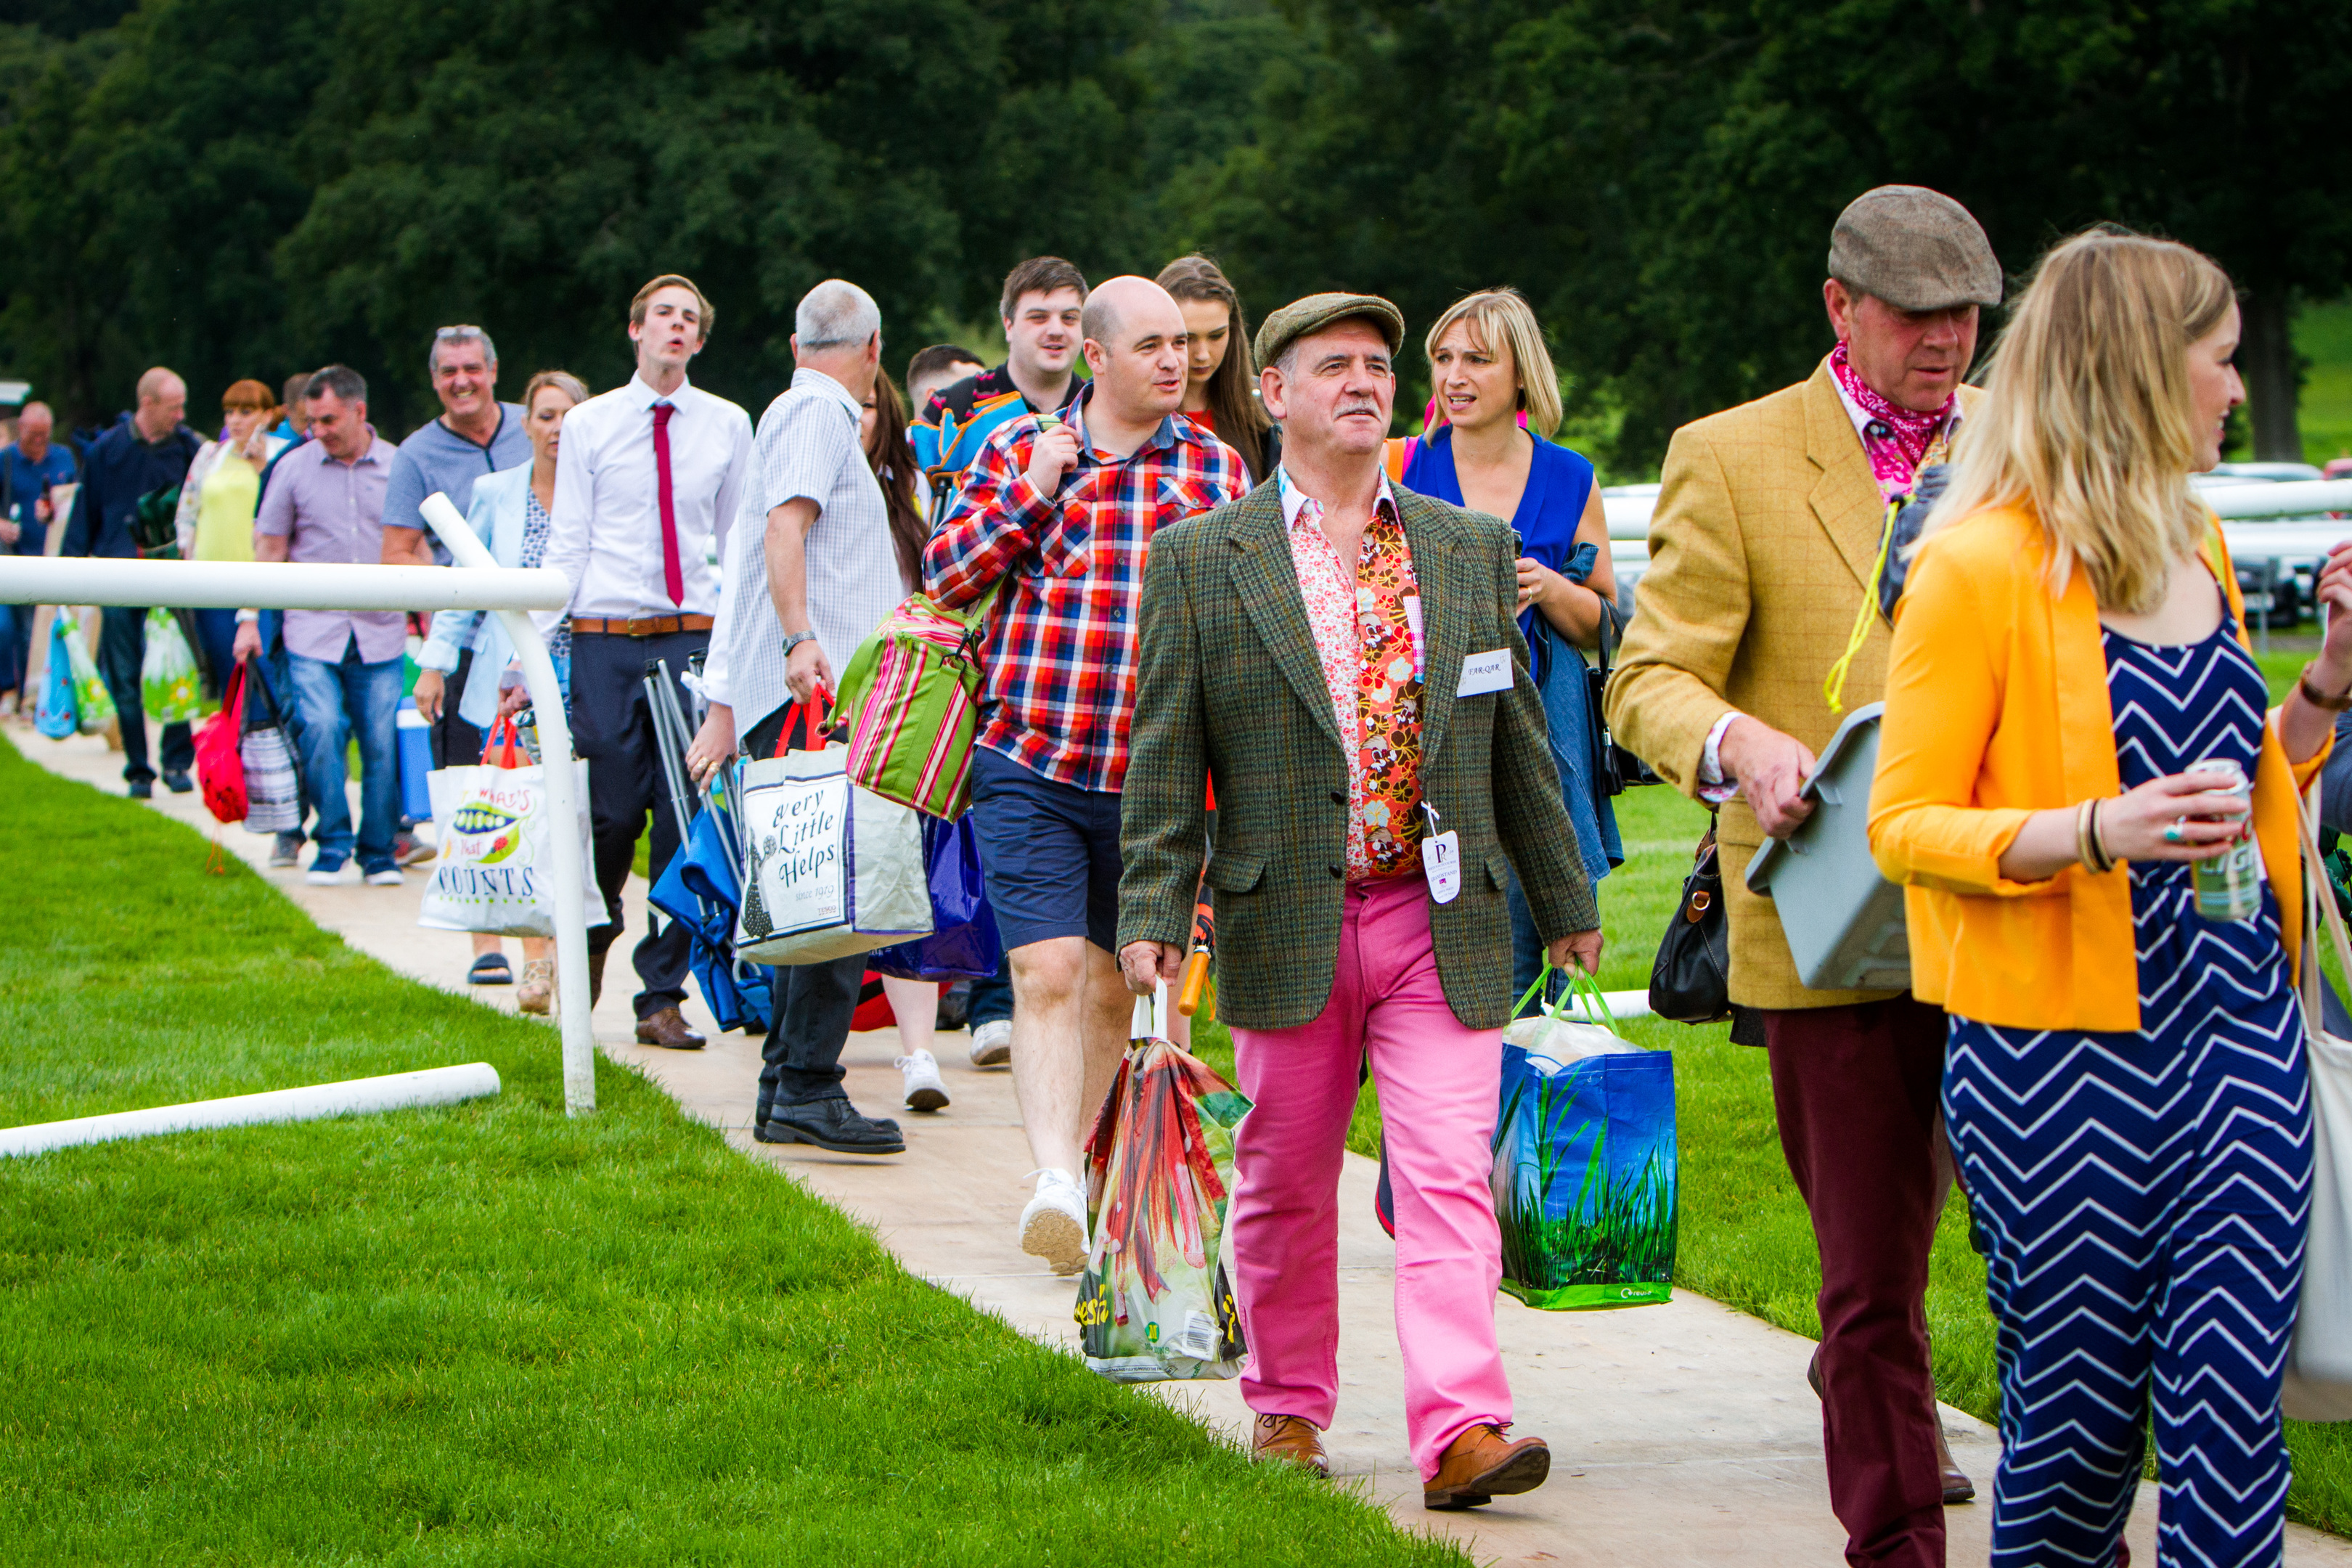 Courier News - Perth - Jamie Buchan Story. Spirit of Rio event as Carnival Raceday hits the Racecourse in Perth featuring music, dancing and racing. Picture shows crowds arriving at the racecourse. Perth Racecourse, off Isla Road, Perth. Saturday 20th August 2016.